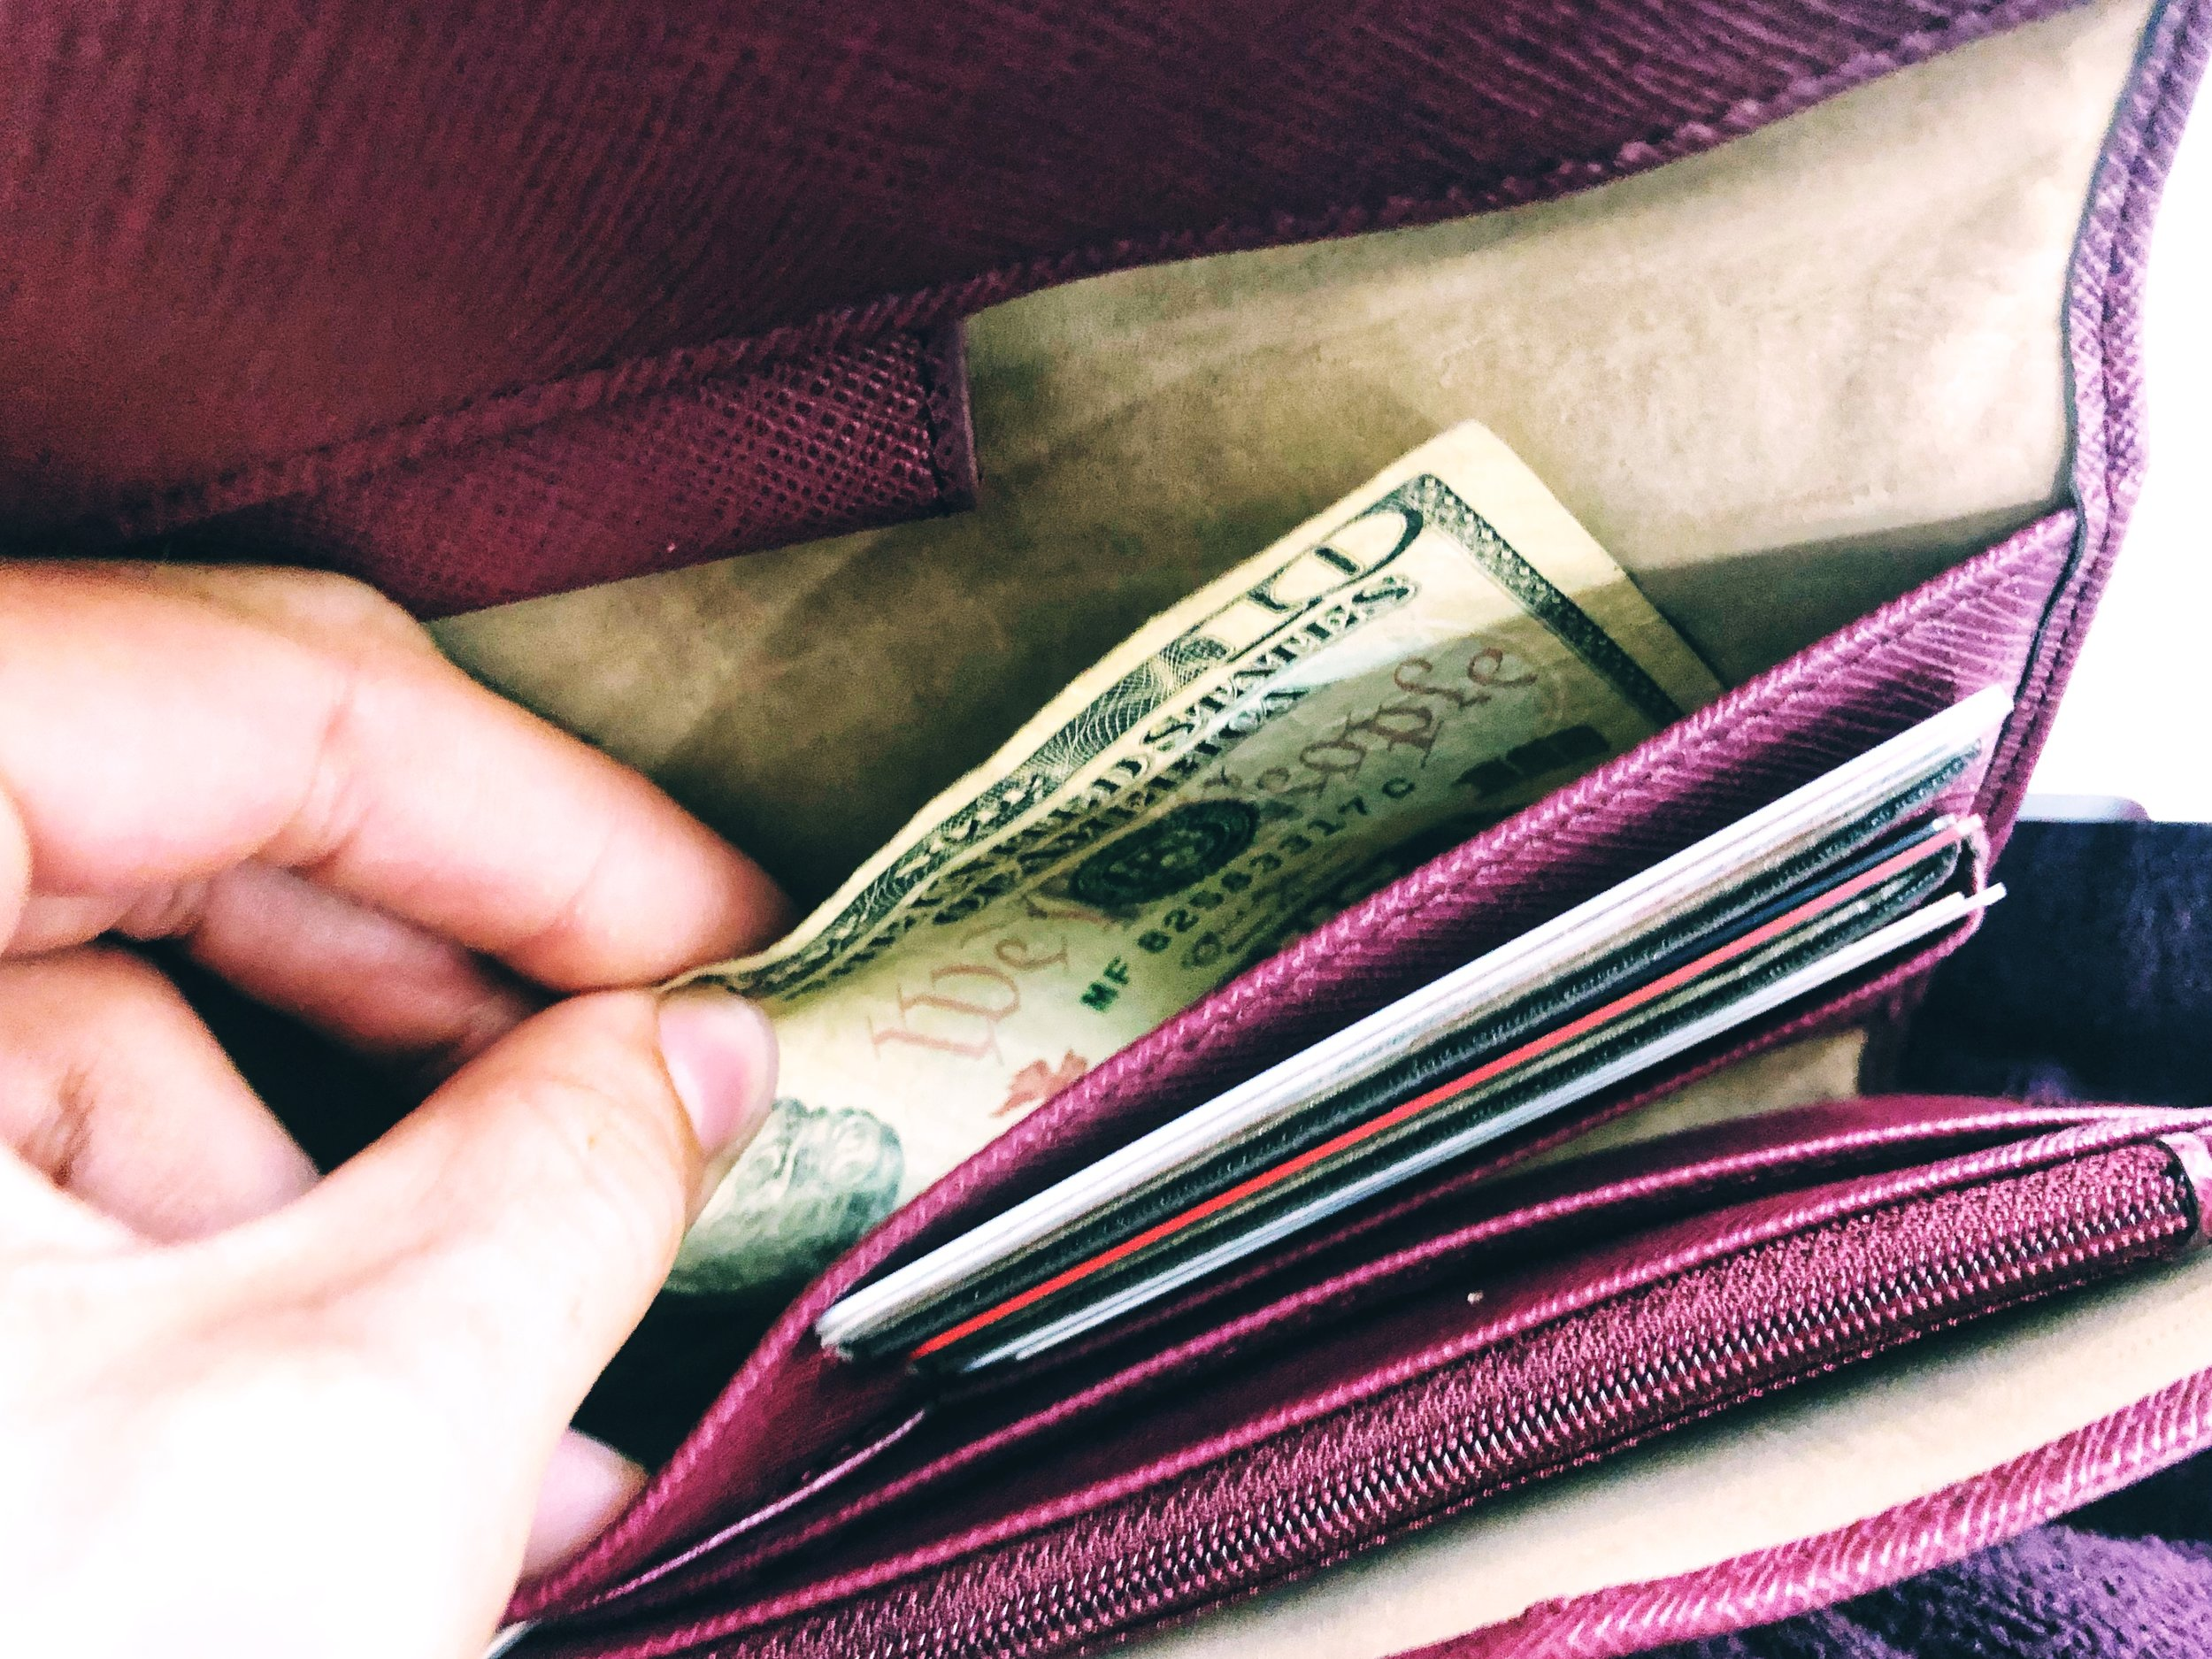 Avoid the surprise of pulling the last $10 bill from your wallet!